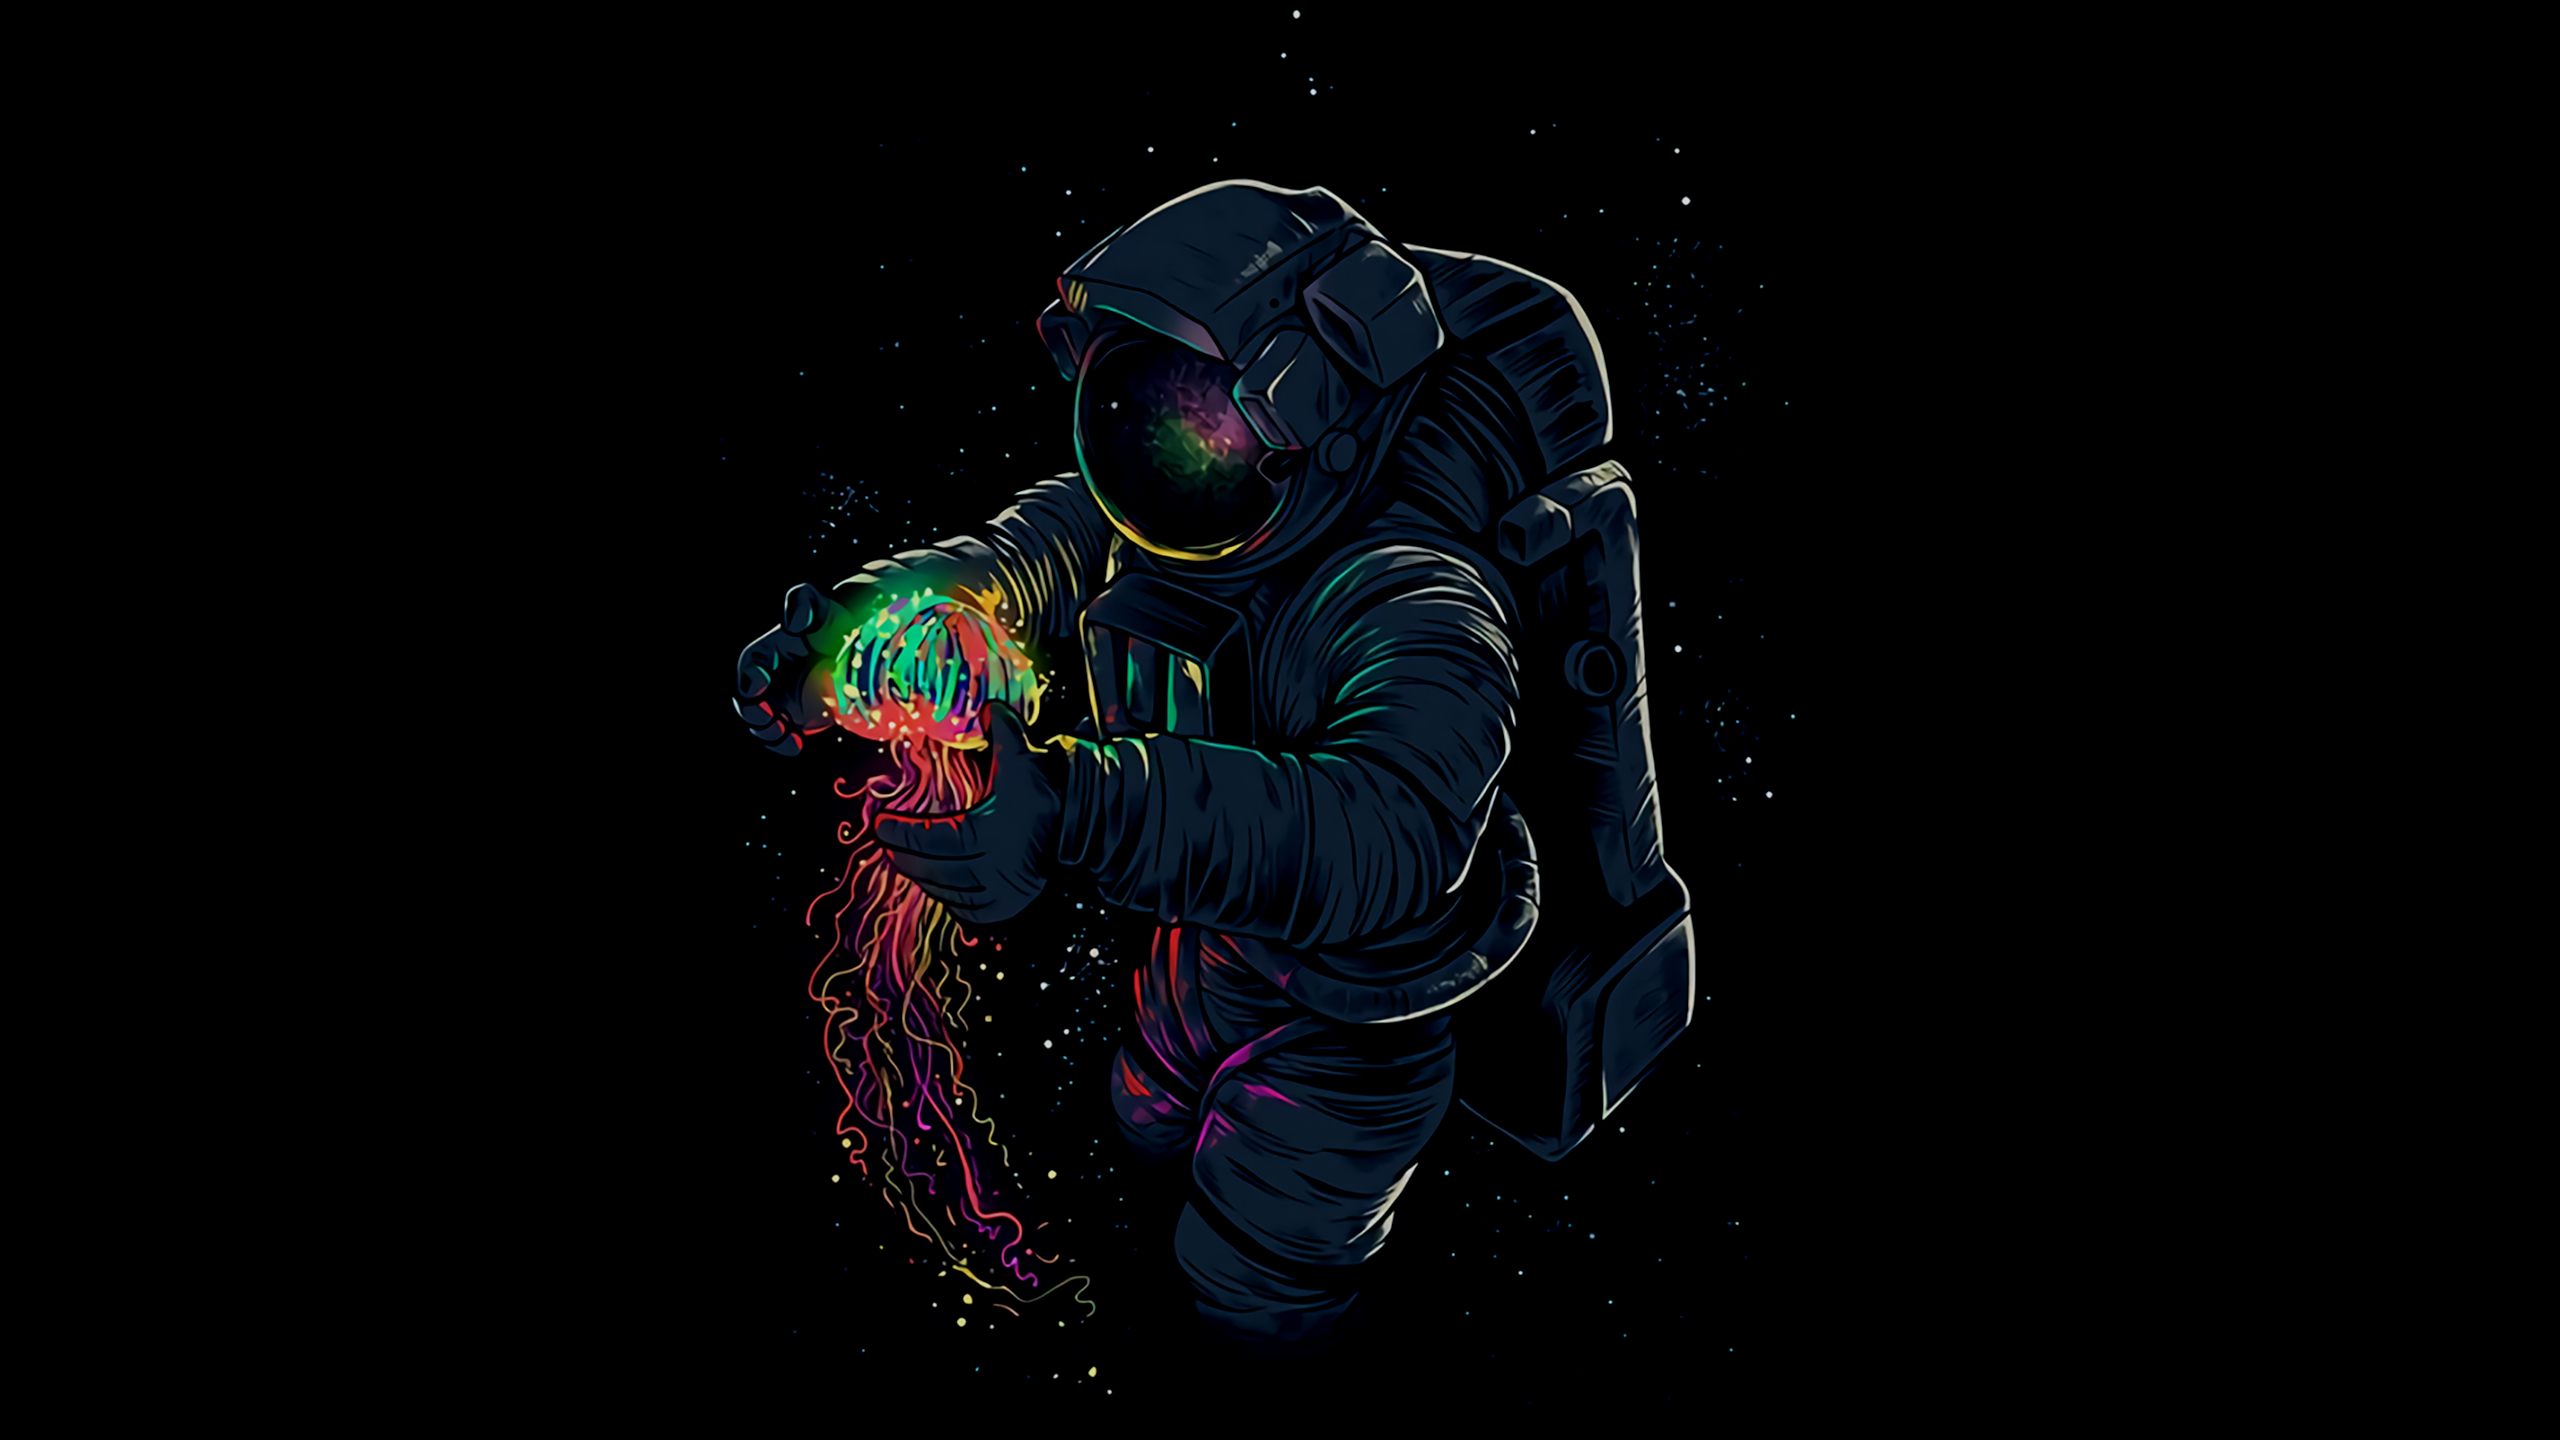 General 2560x1440 space astronaut artwork jellyfish